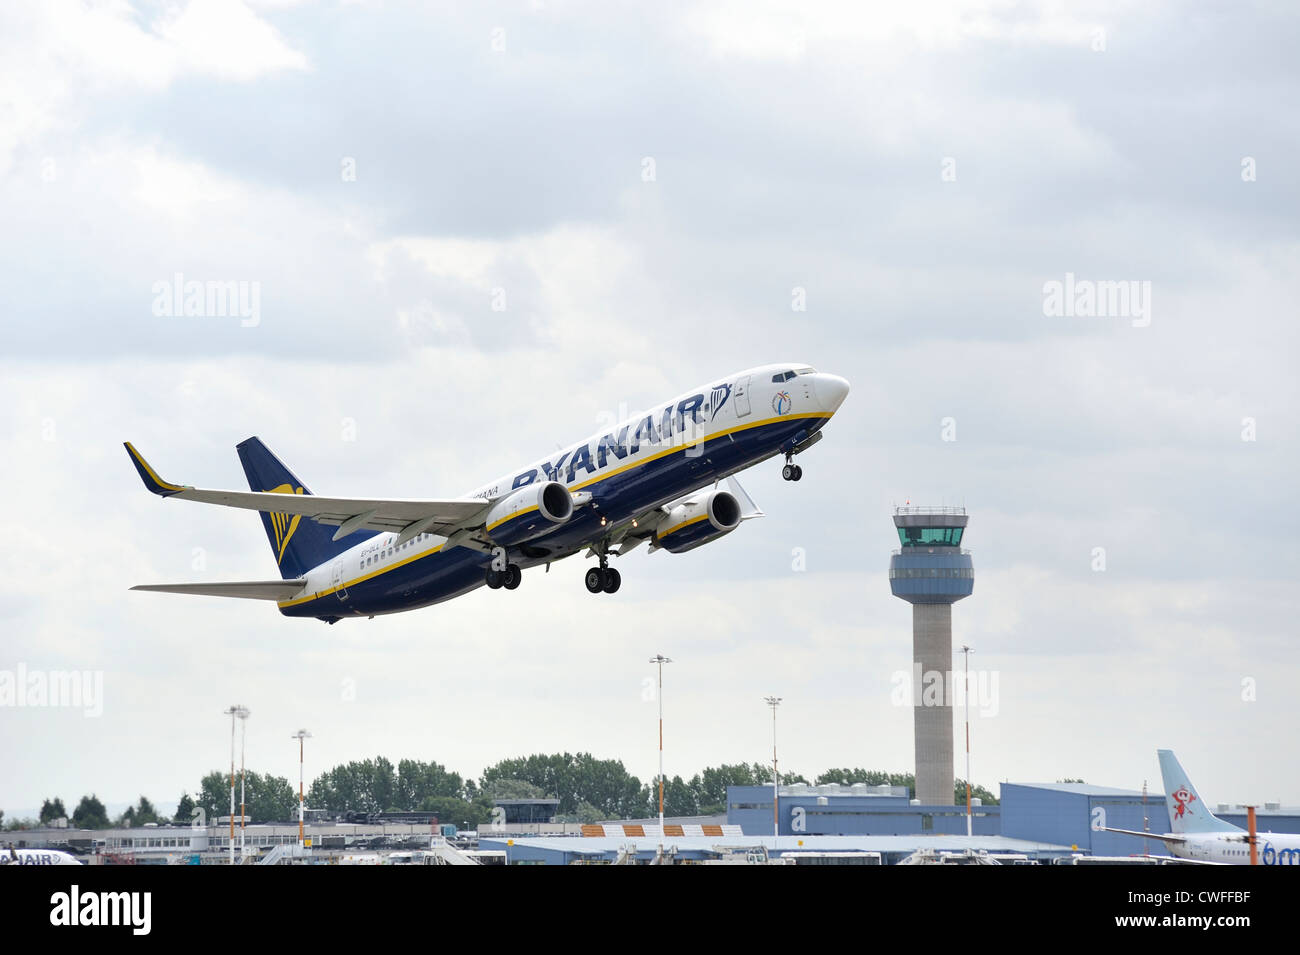 ryanair jet taking off with the air traffic control tower in the background. east midlands airport england uk Stock Photo